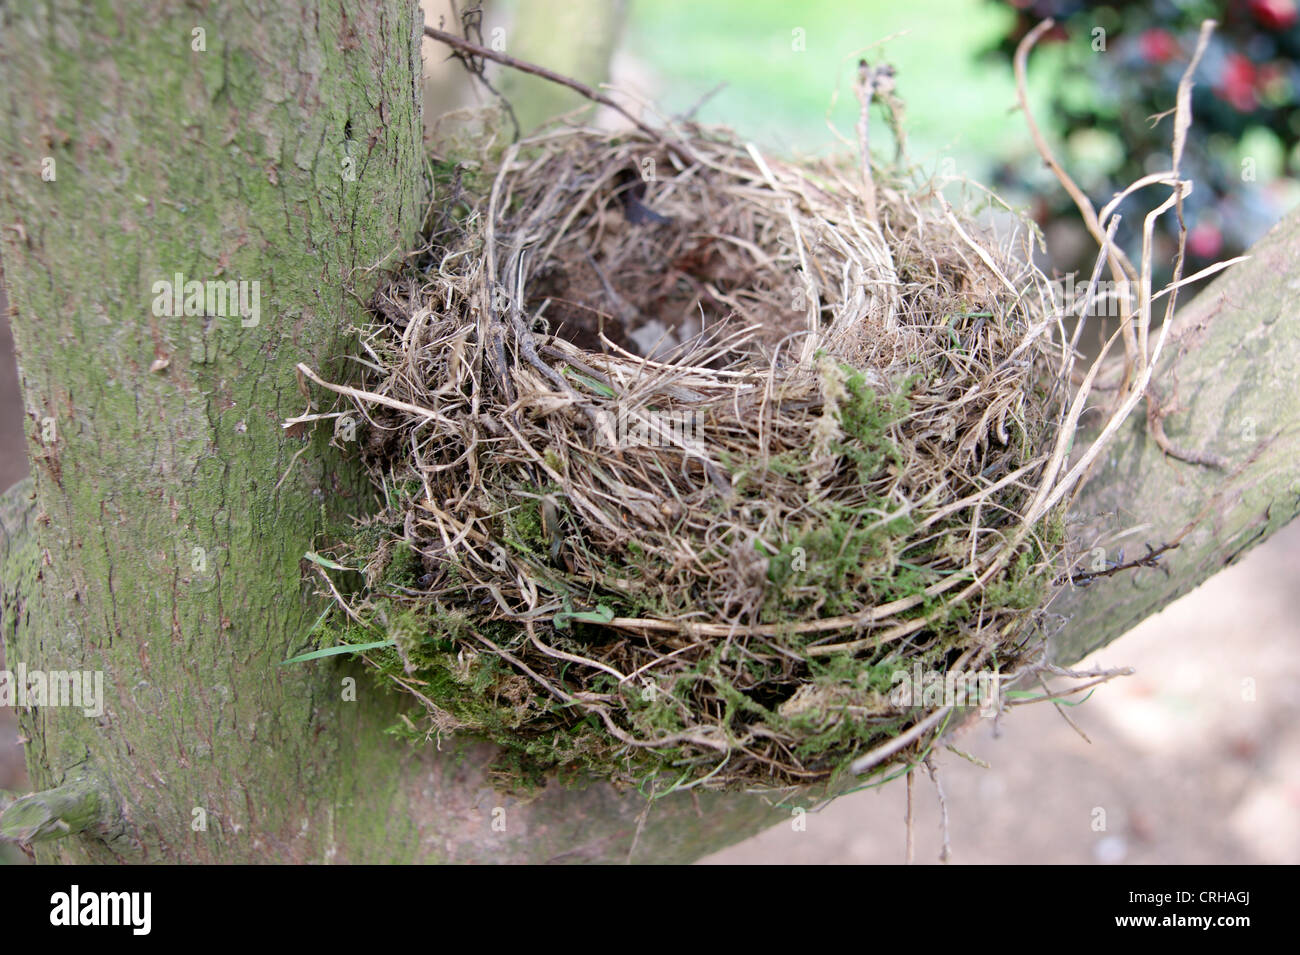 Abandoned empty birds nest in a tree (could symbolise loss of pension / savings / investment) - Stock Image